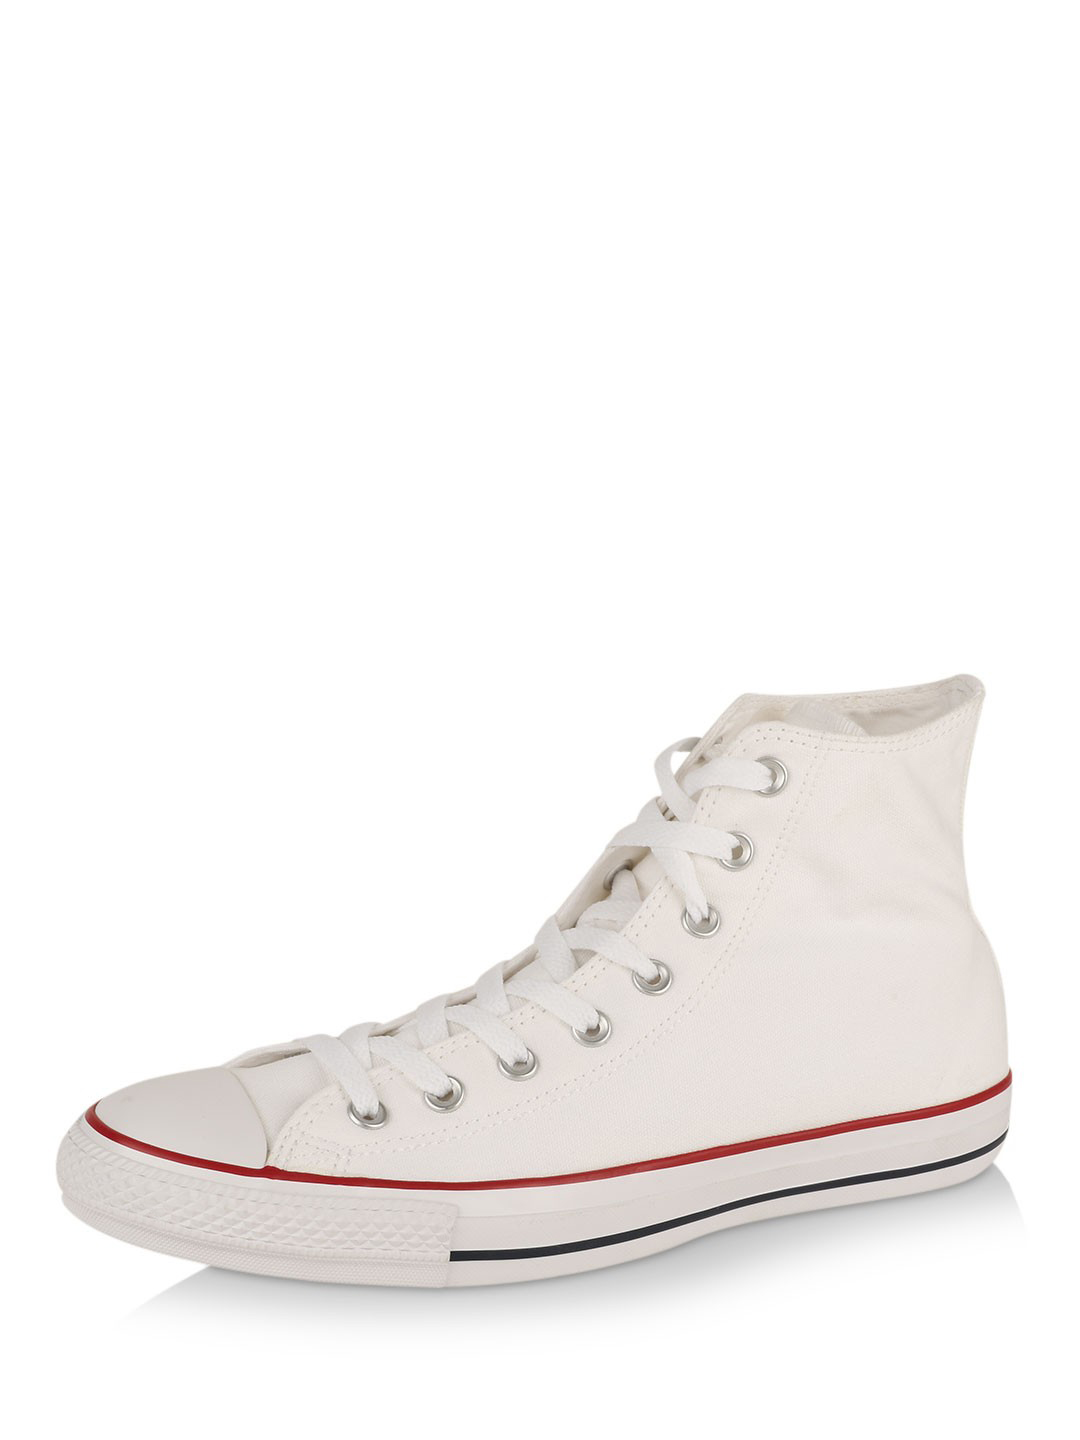 Converse OPTICAL WHITE New Improved All Star Hi Trainers 1